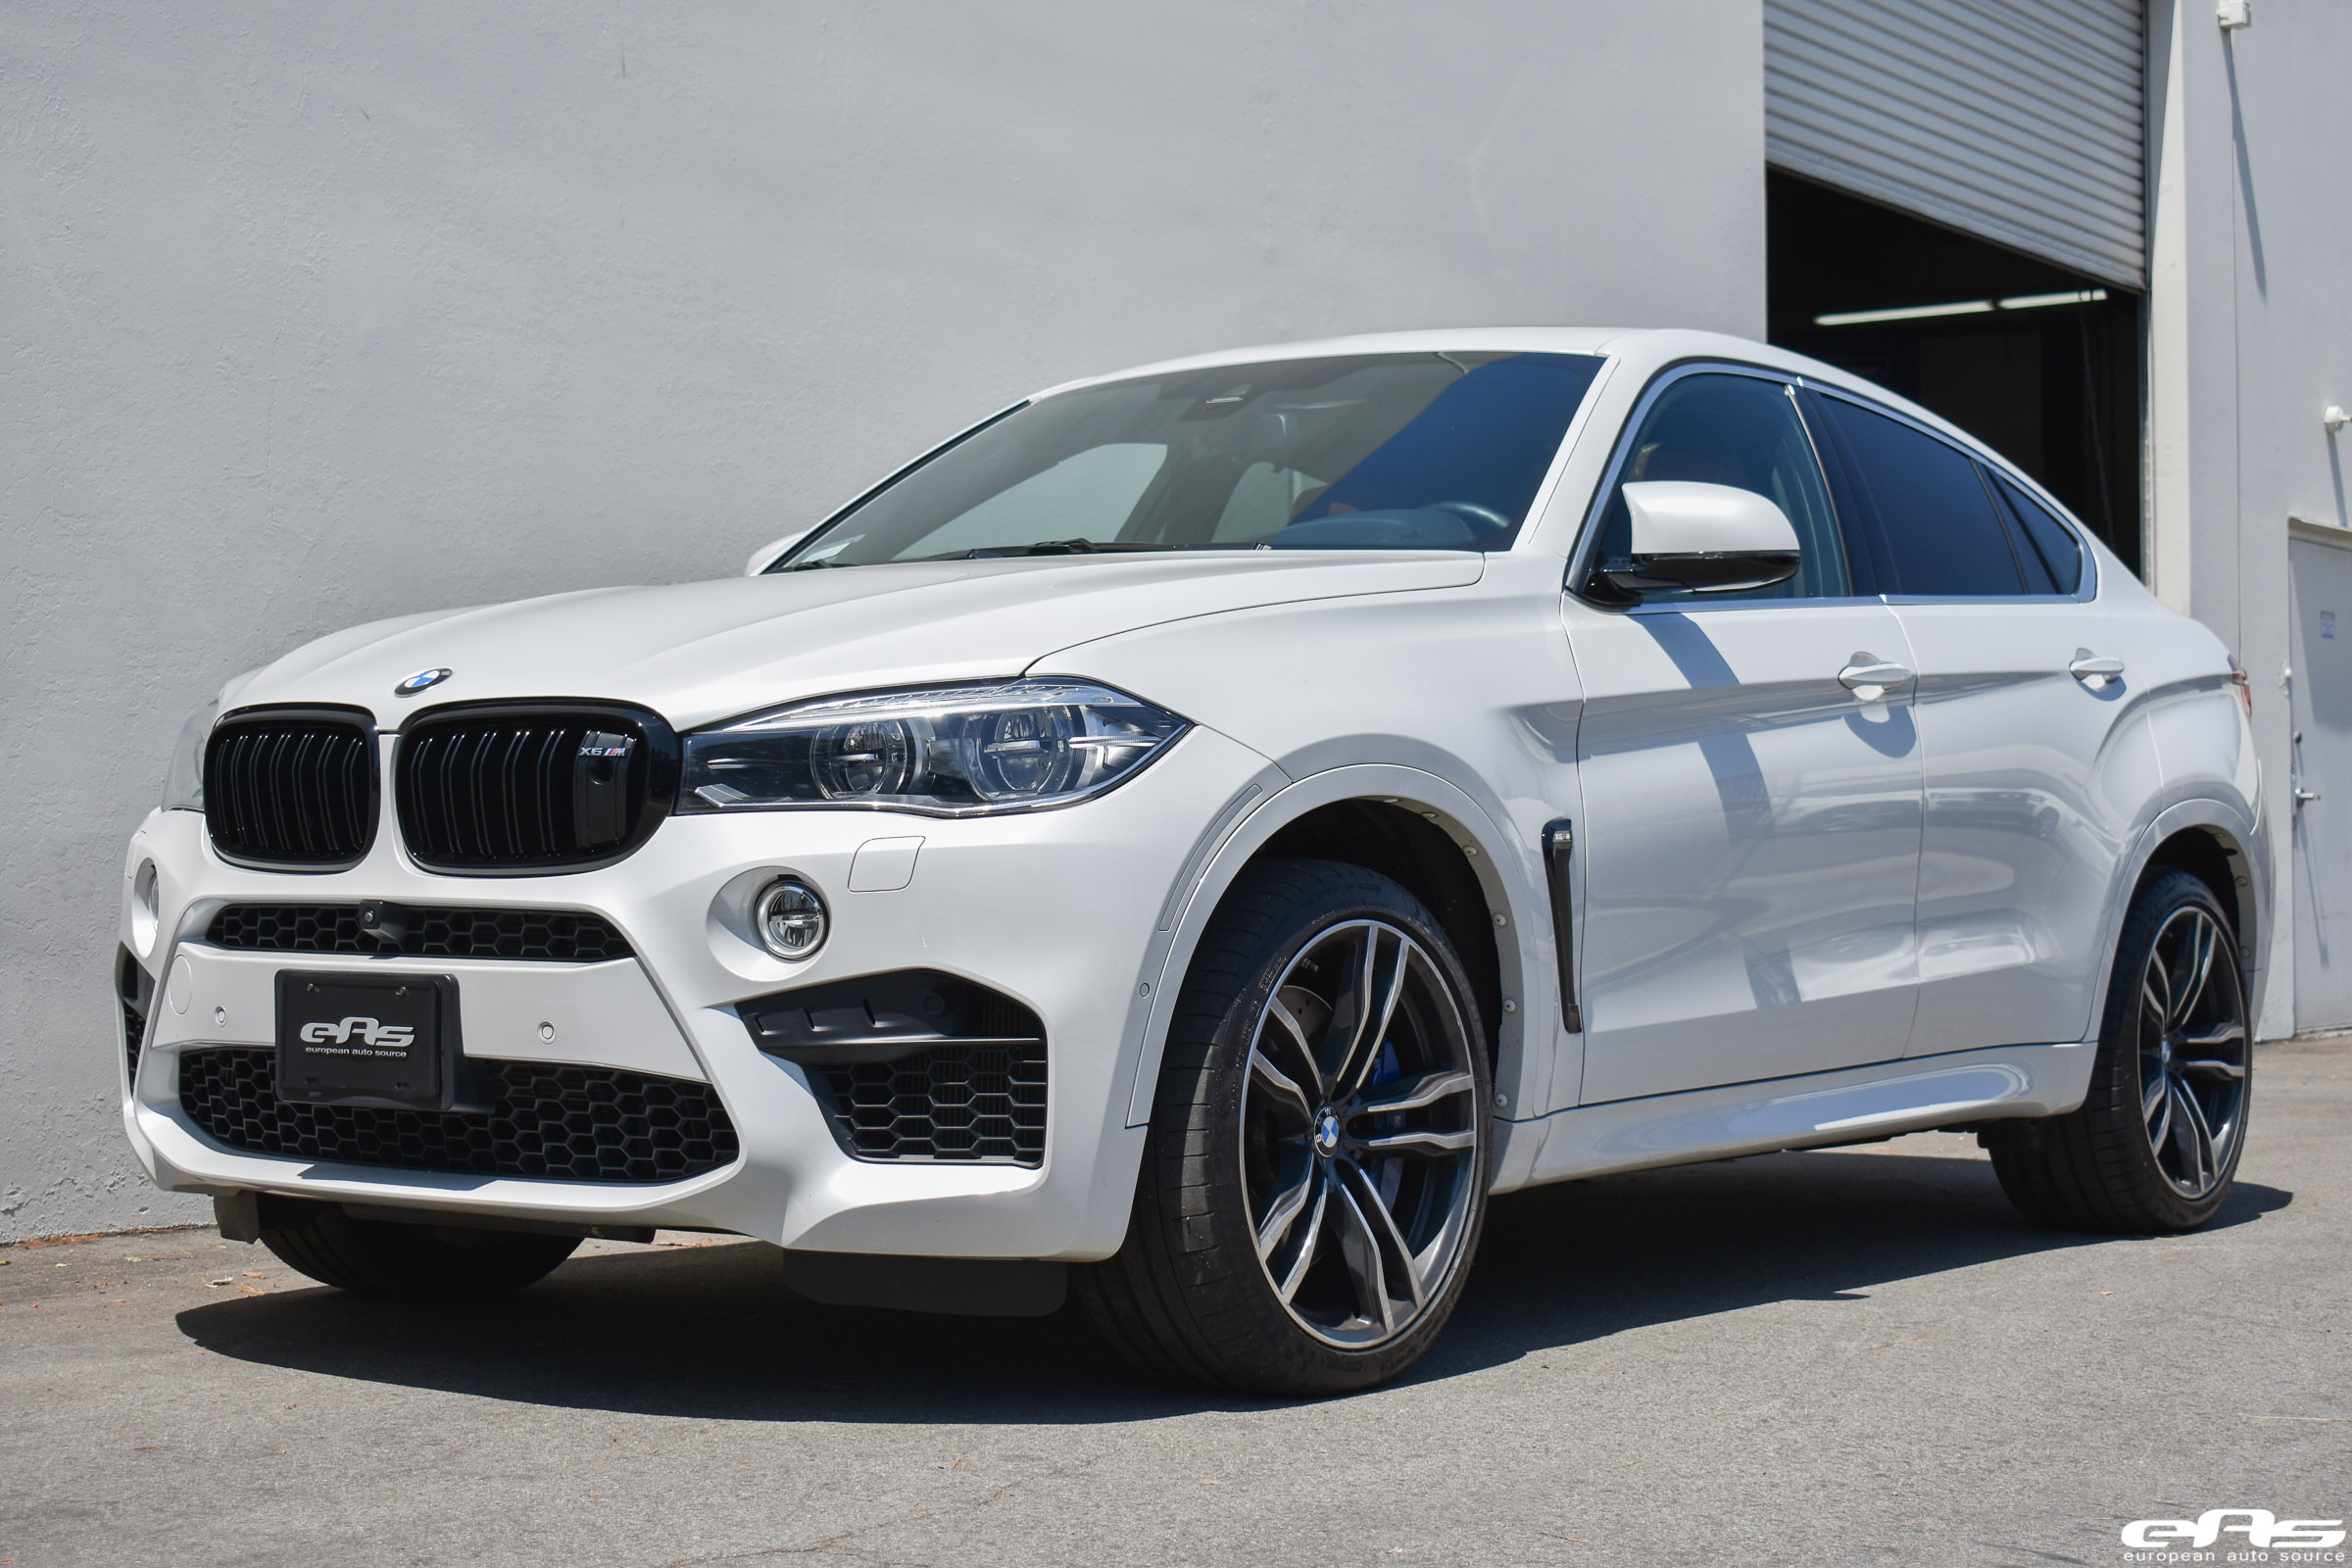 Mineral White BMW X6 M With Cosmetic Touches Image 18